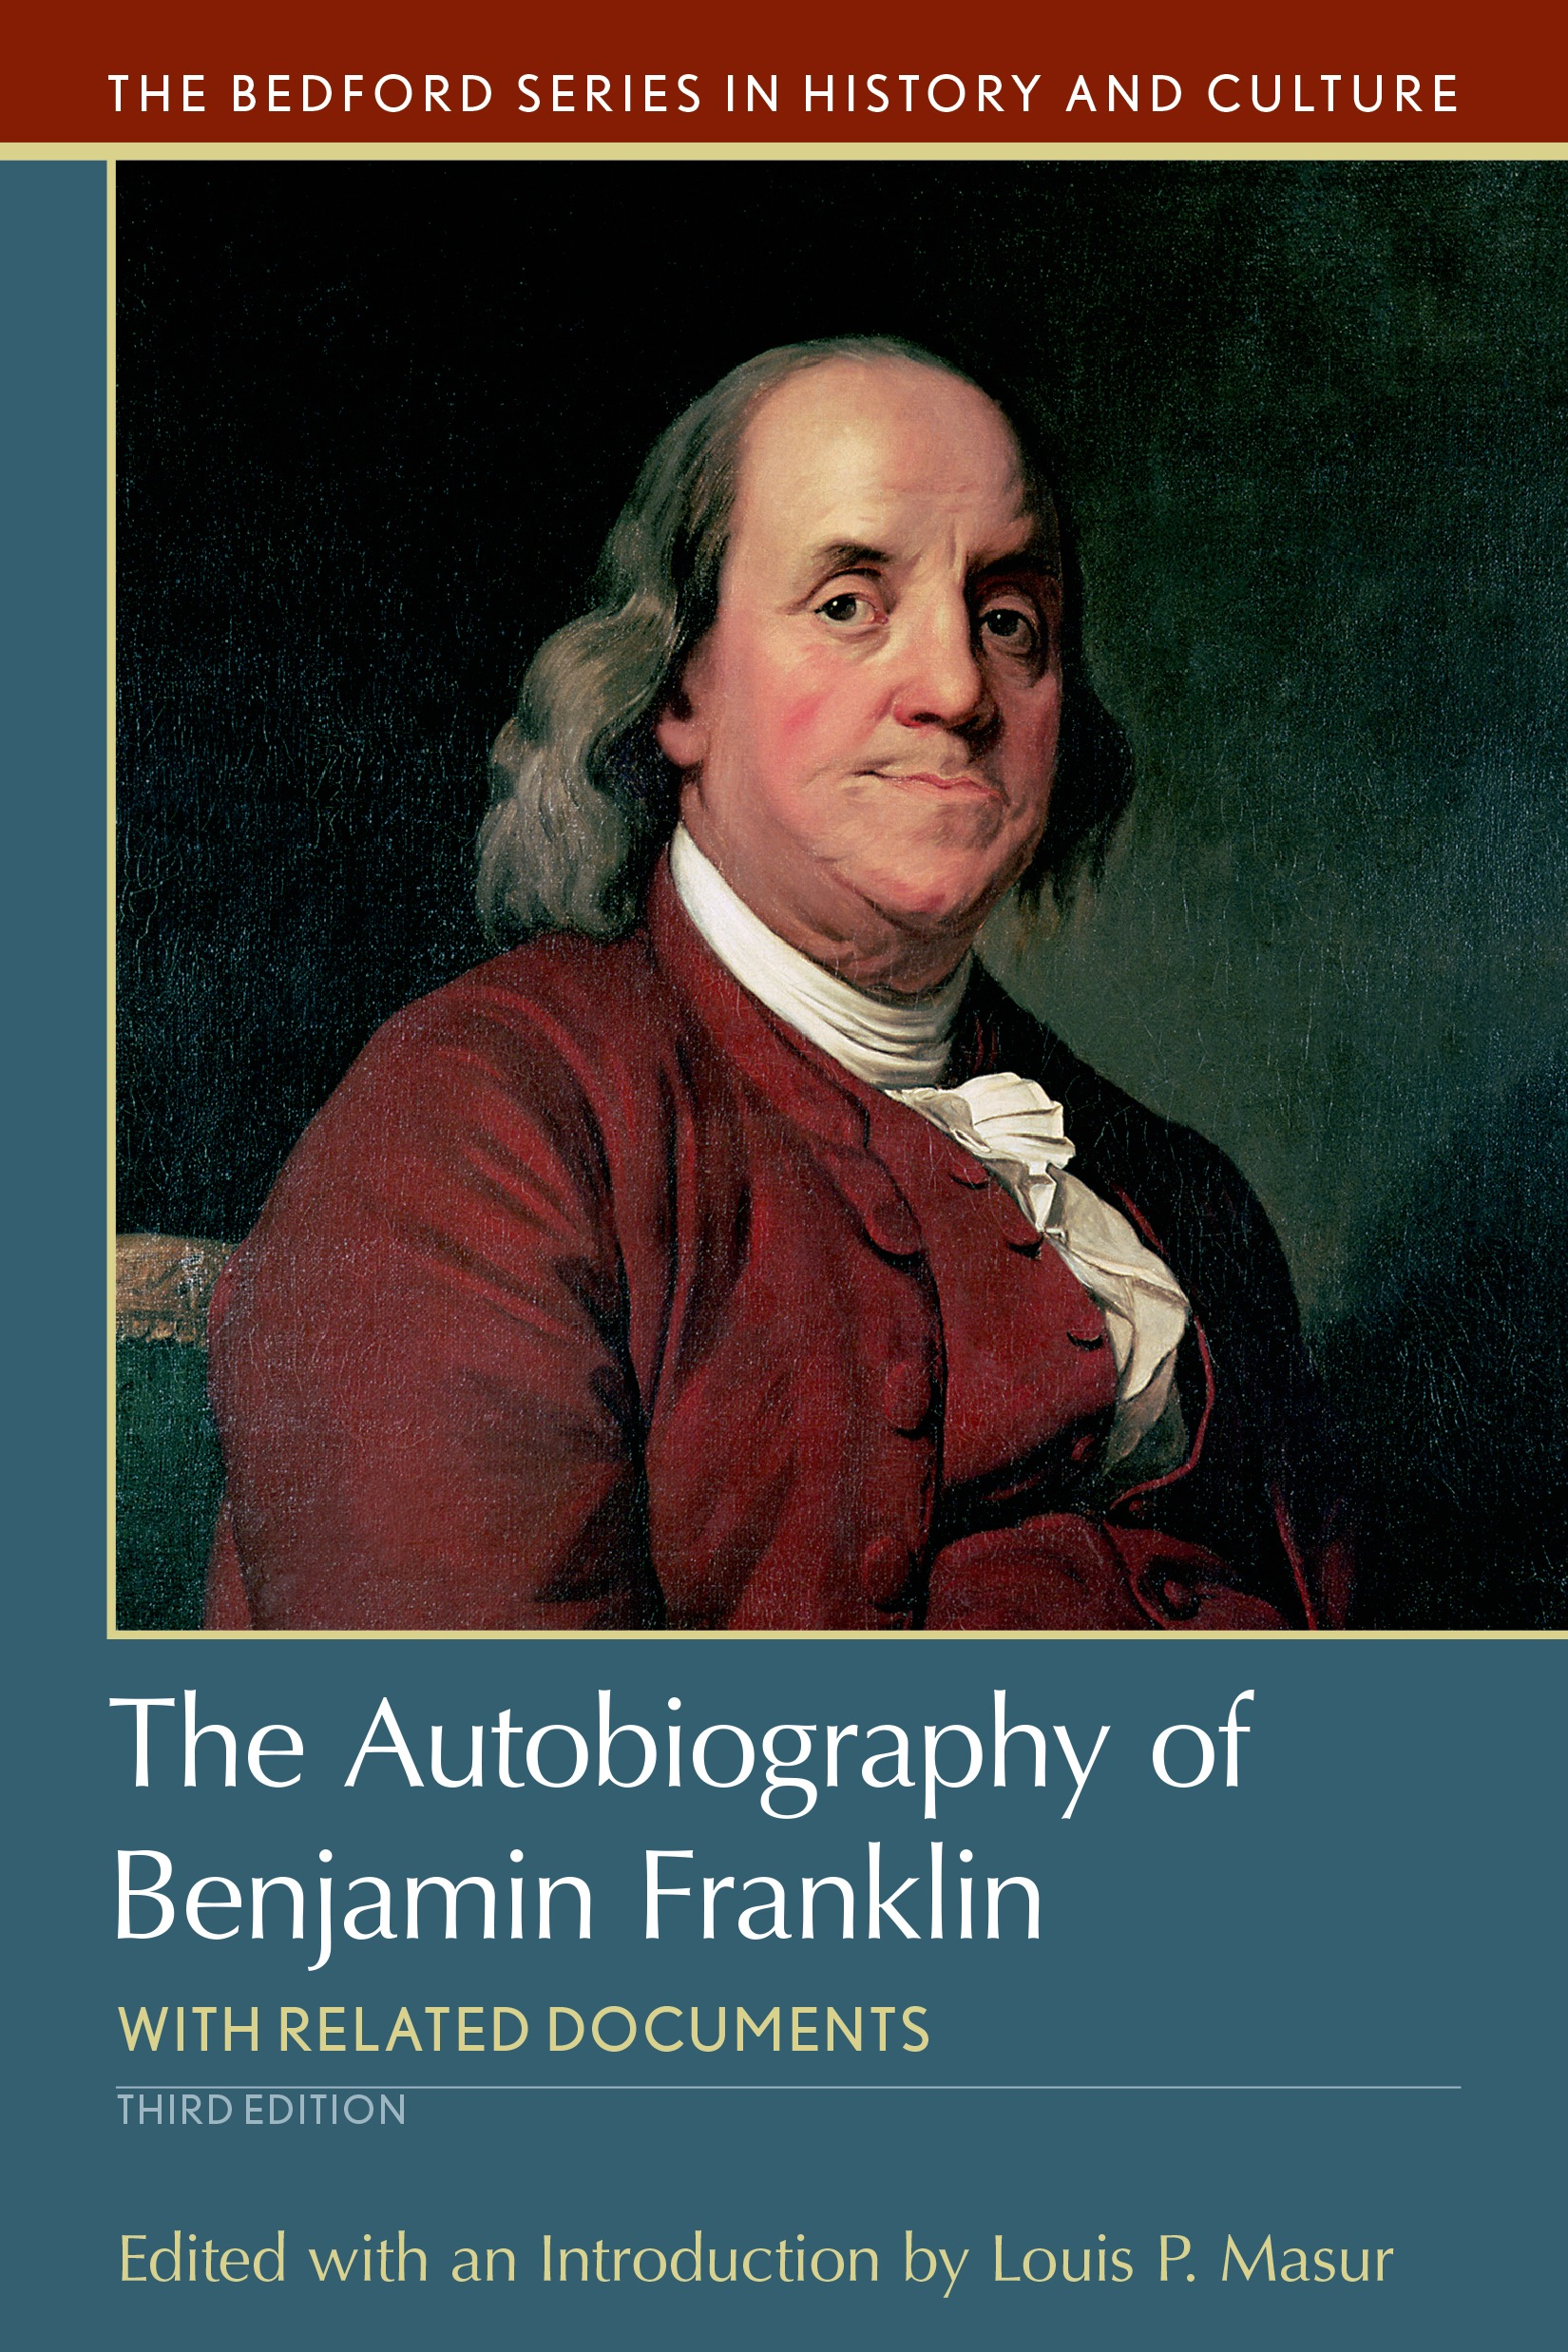 biography of benjamin franklin essay Essay about benjamin franklin 1935 words | 8 pages benjamin franklin benjamin franklin was an american printer and publisher, author, inventor, scientist, and who was a diplomat born on january 17th 1706 and died in philadelphia on april 17th 1790.